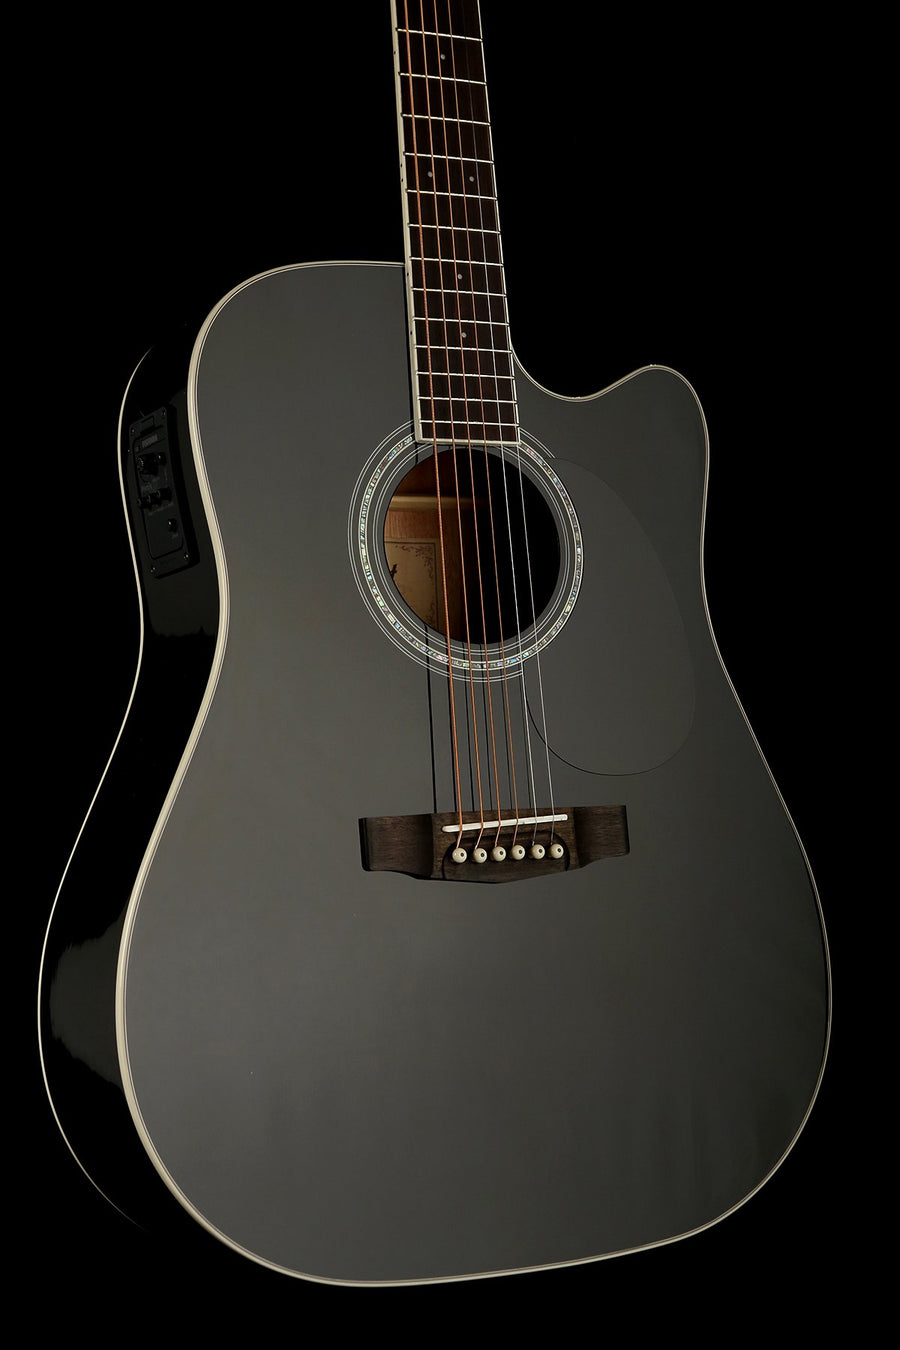 Cort MR710F 'Gloss Black' Acoustic Electric Guitar